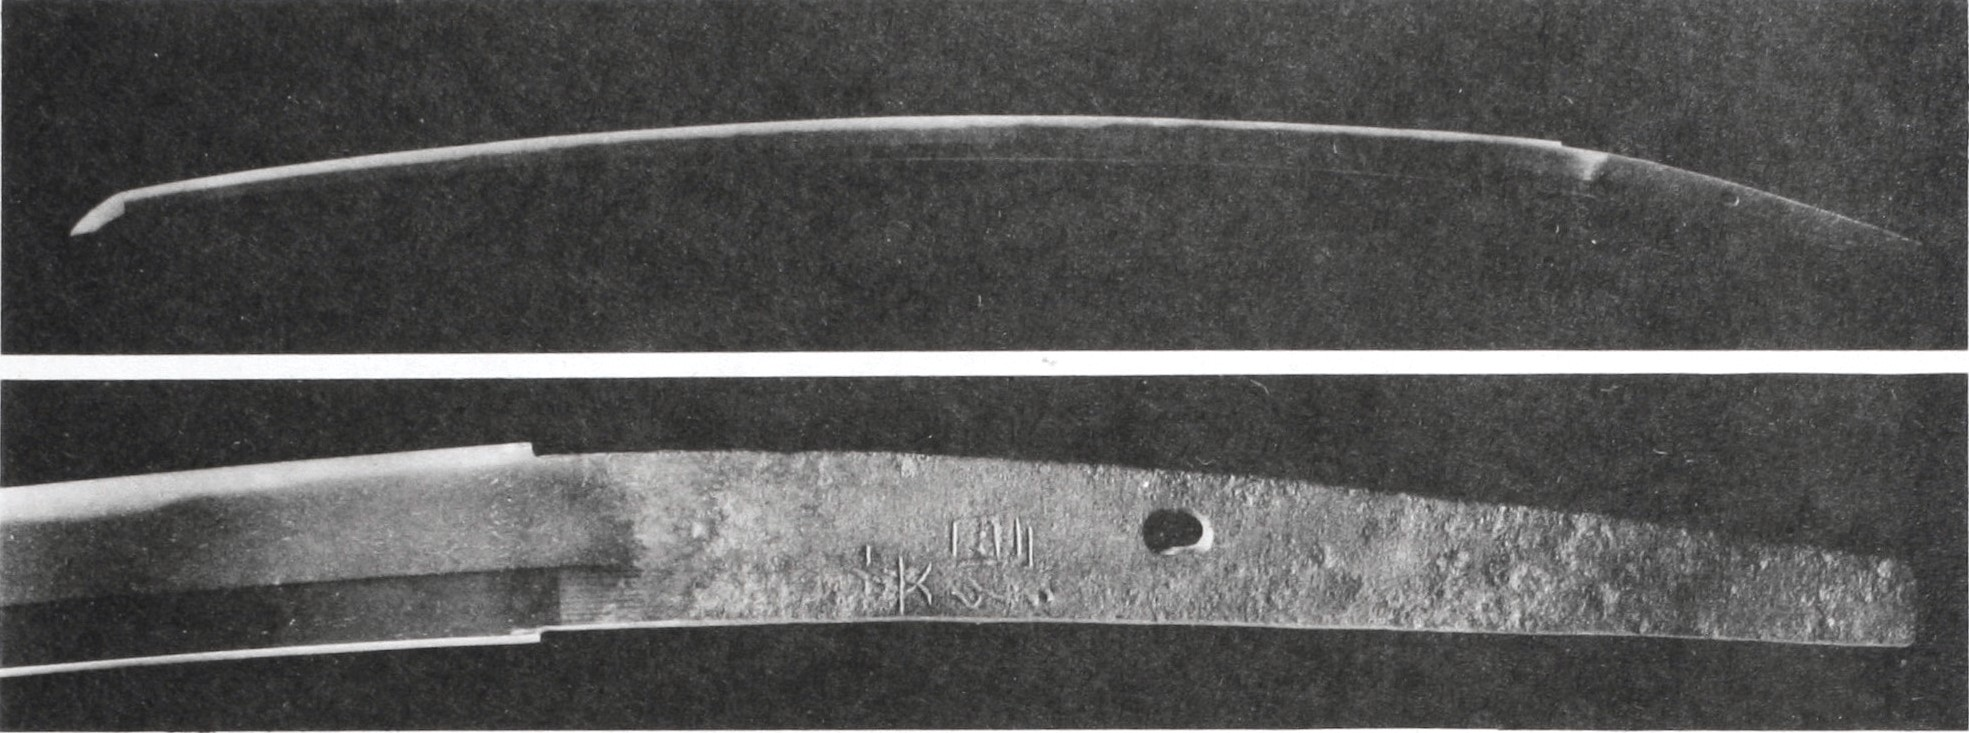 https://upload.wikimedia.org/wikipedia/commons/0/05/DOJI_KIRI_sword.jpg